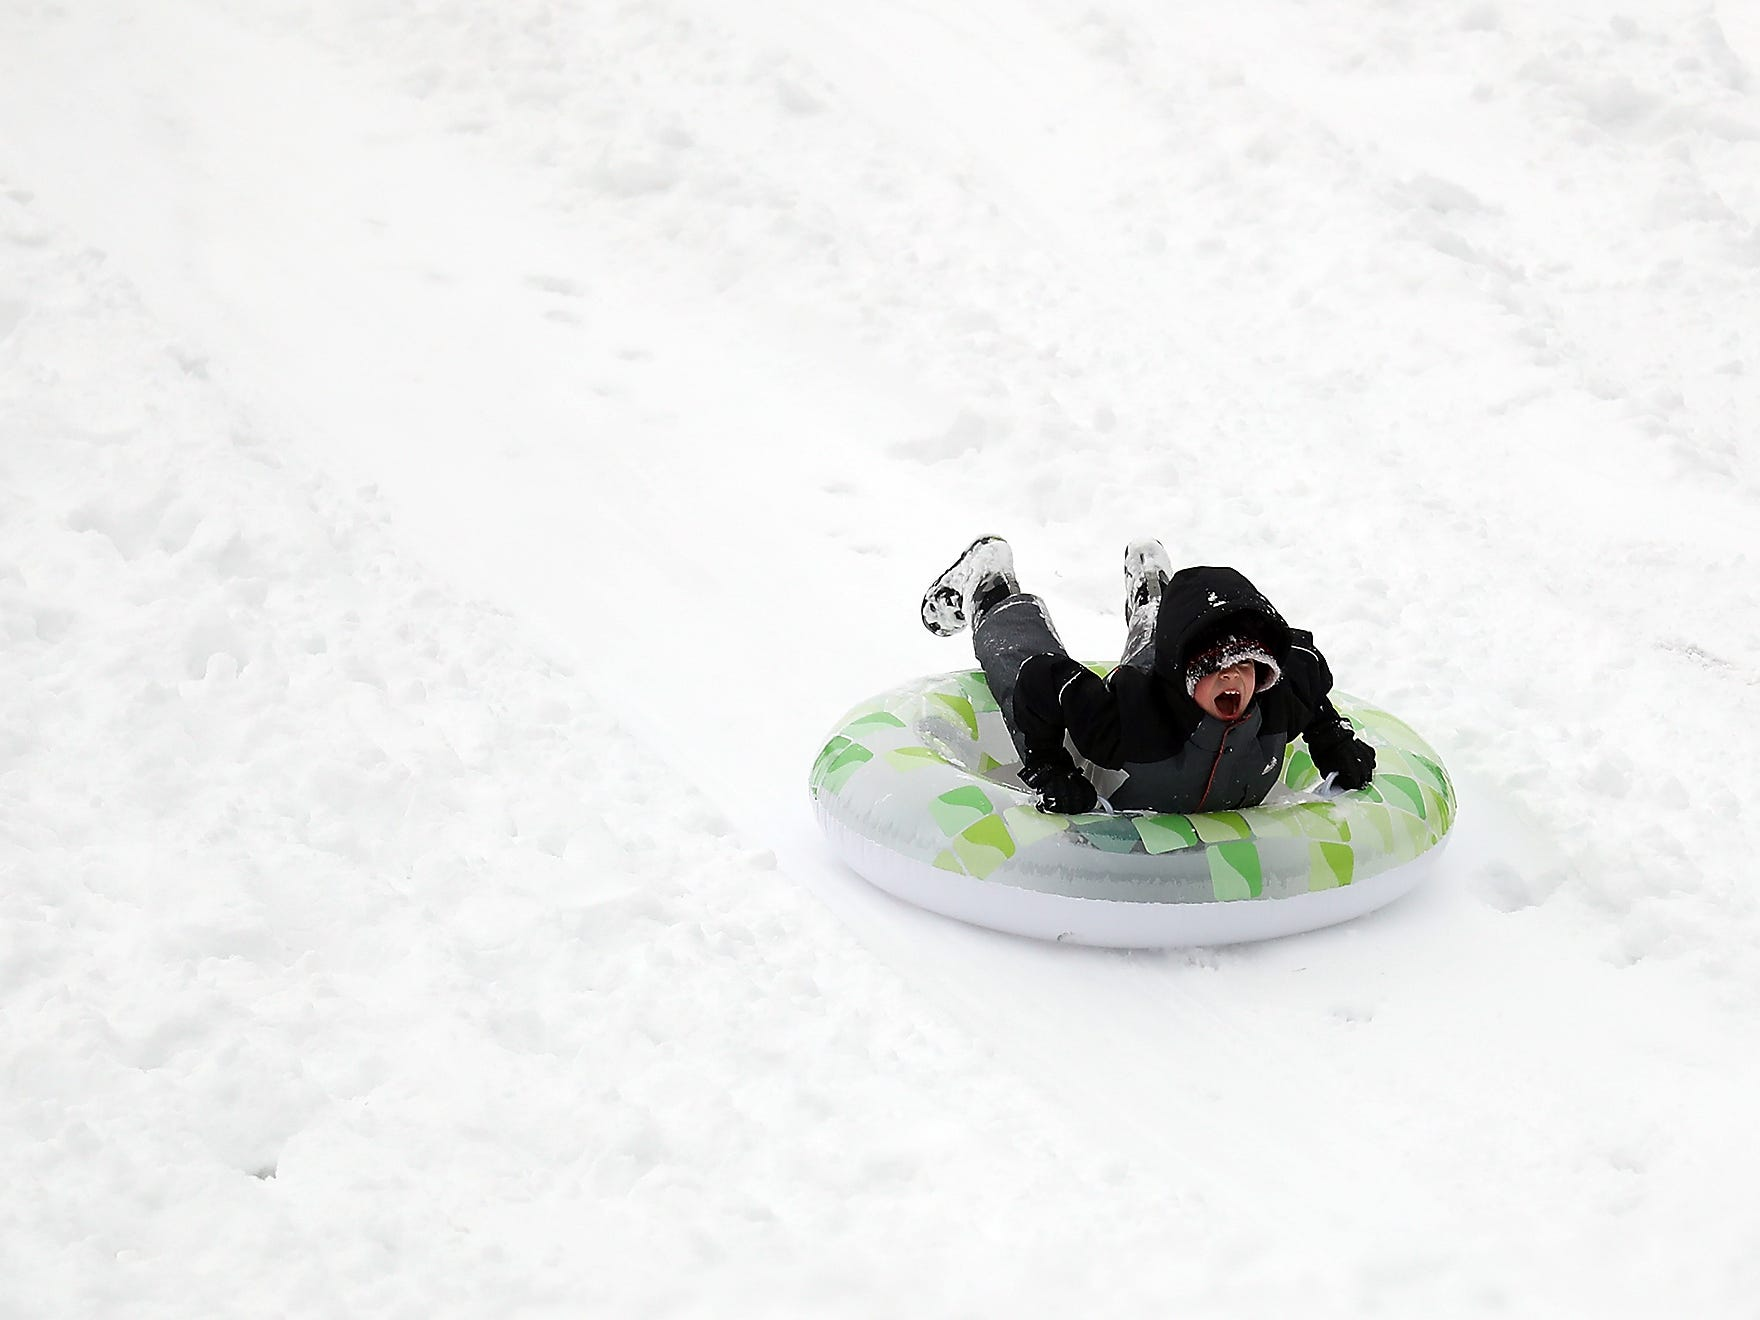 Sledders at Silver Ridge Elementary School in Silverdale on Saturday, February 9, 2019.